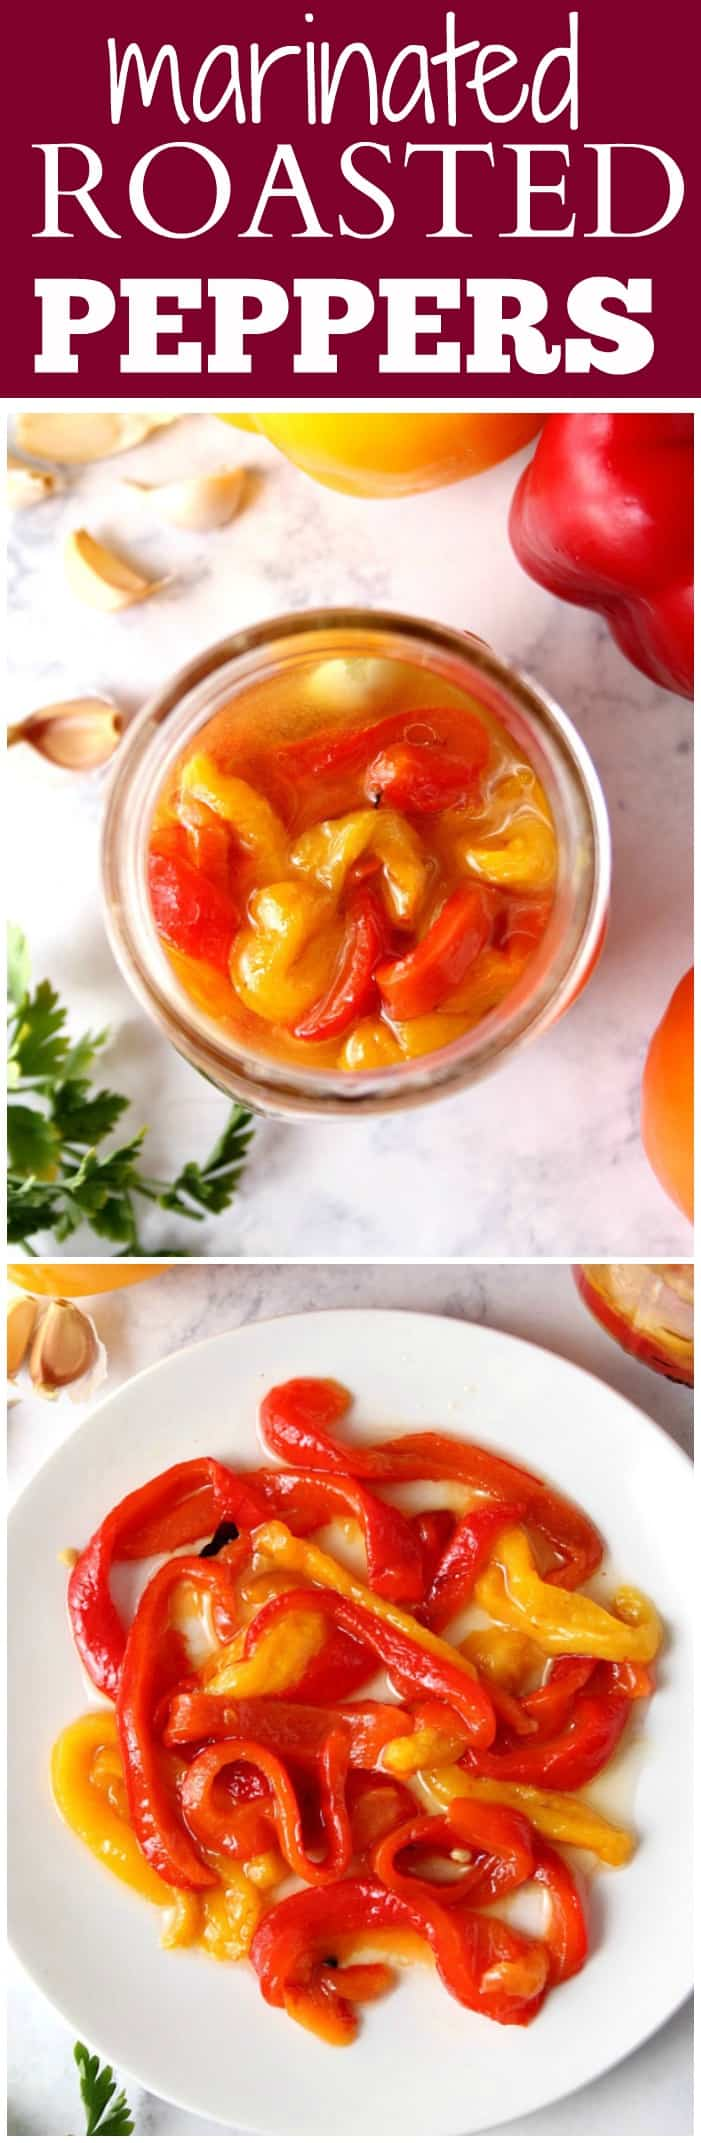 marinated roasted peppers recipe long Easy Marinated Roasted Peppers Recipe